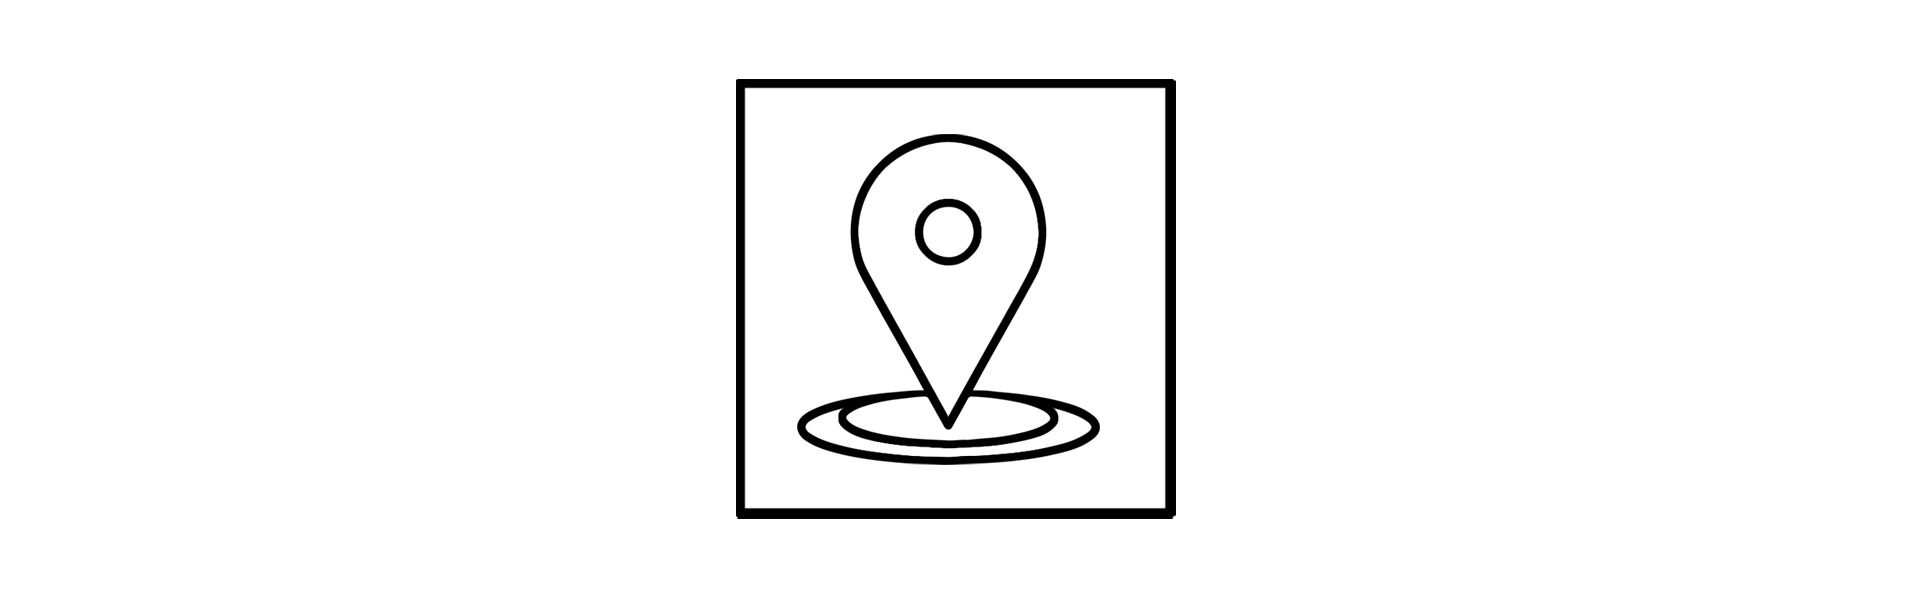 SM2-Locate-white with black outline-smaller